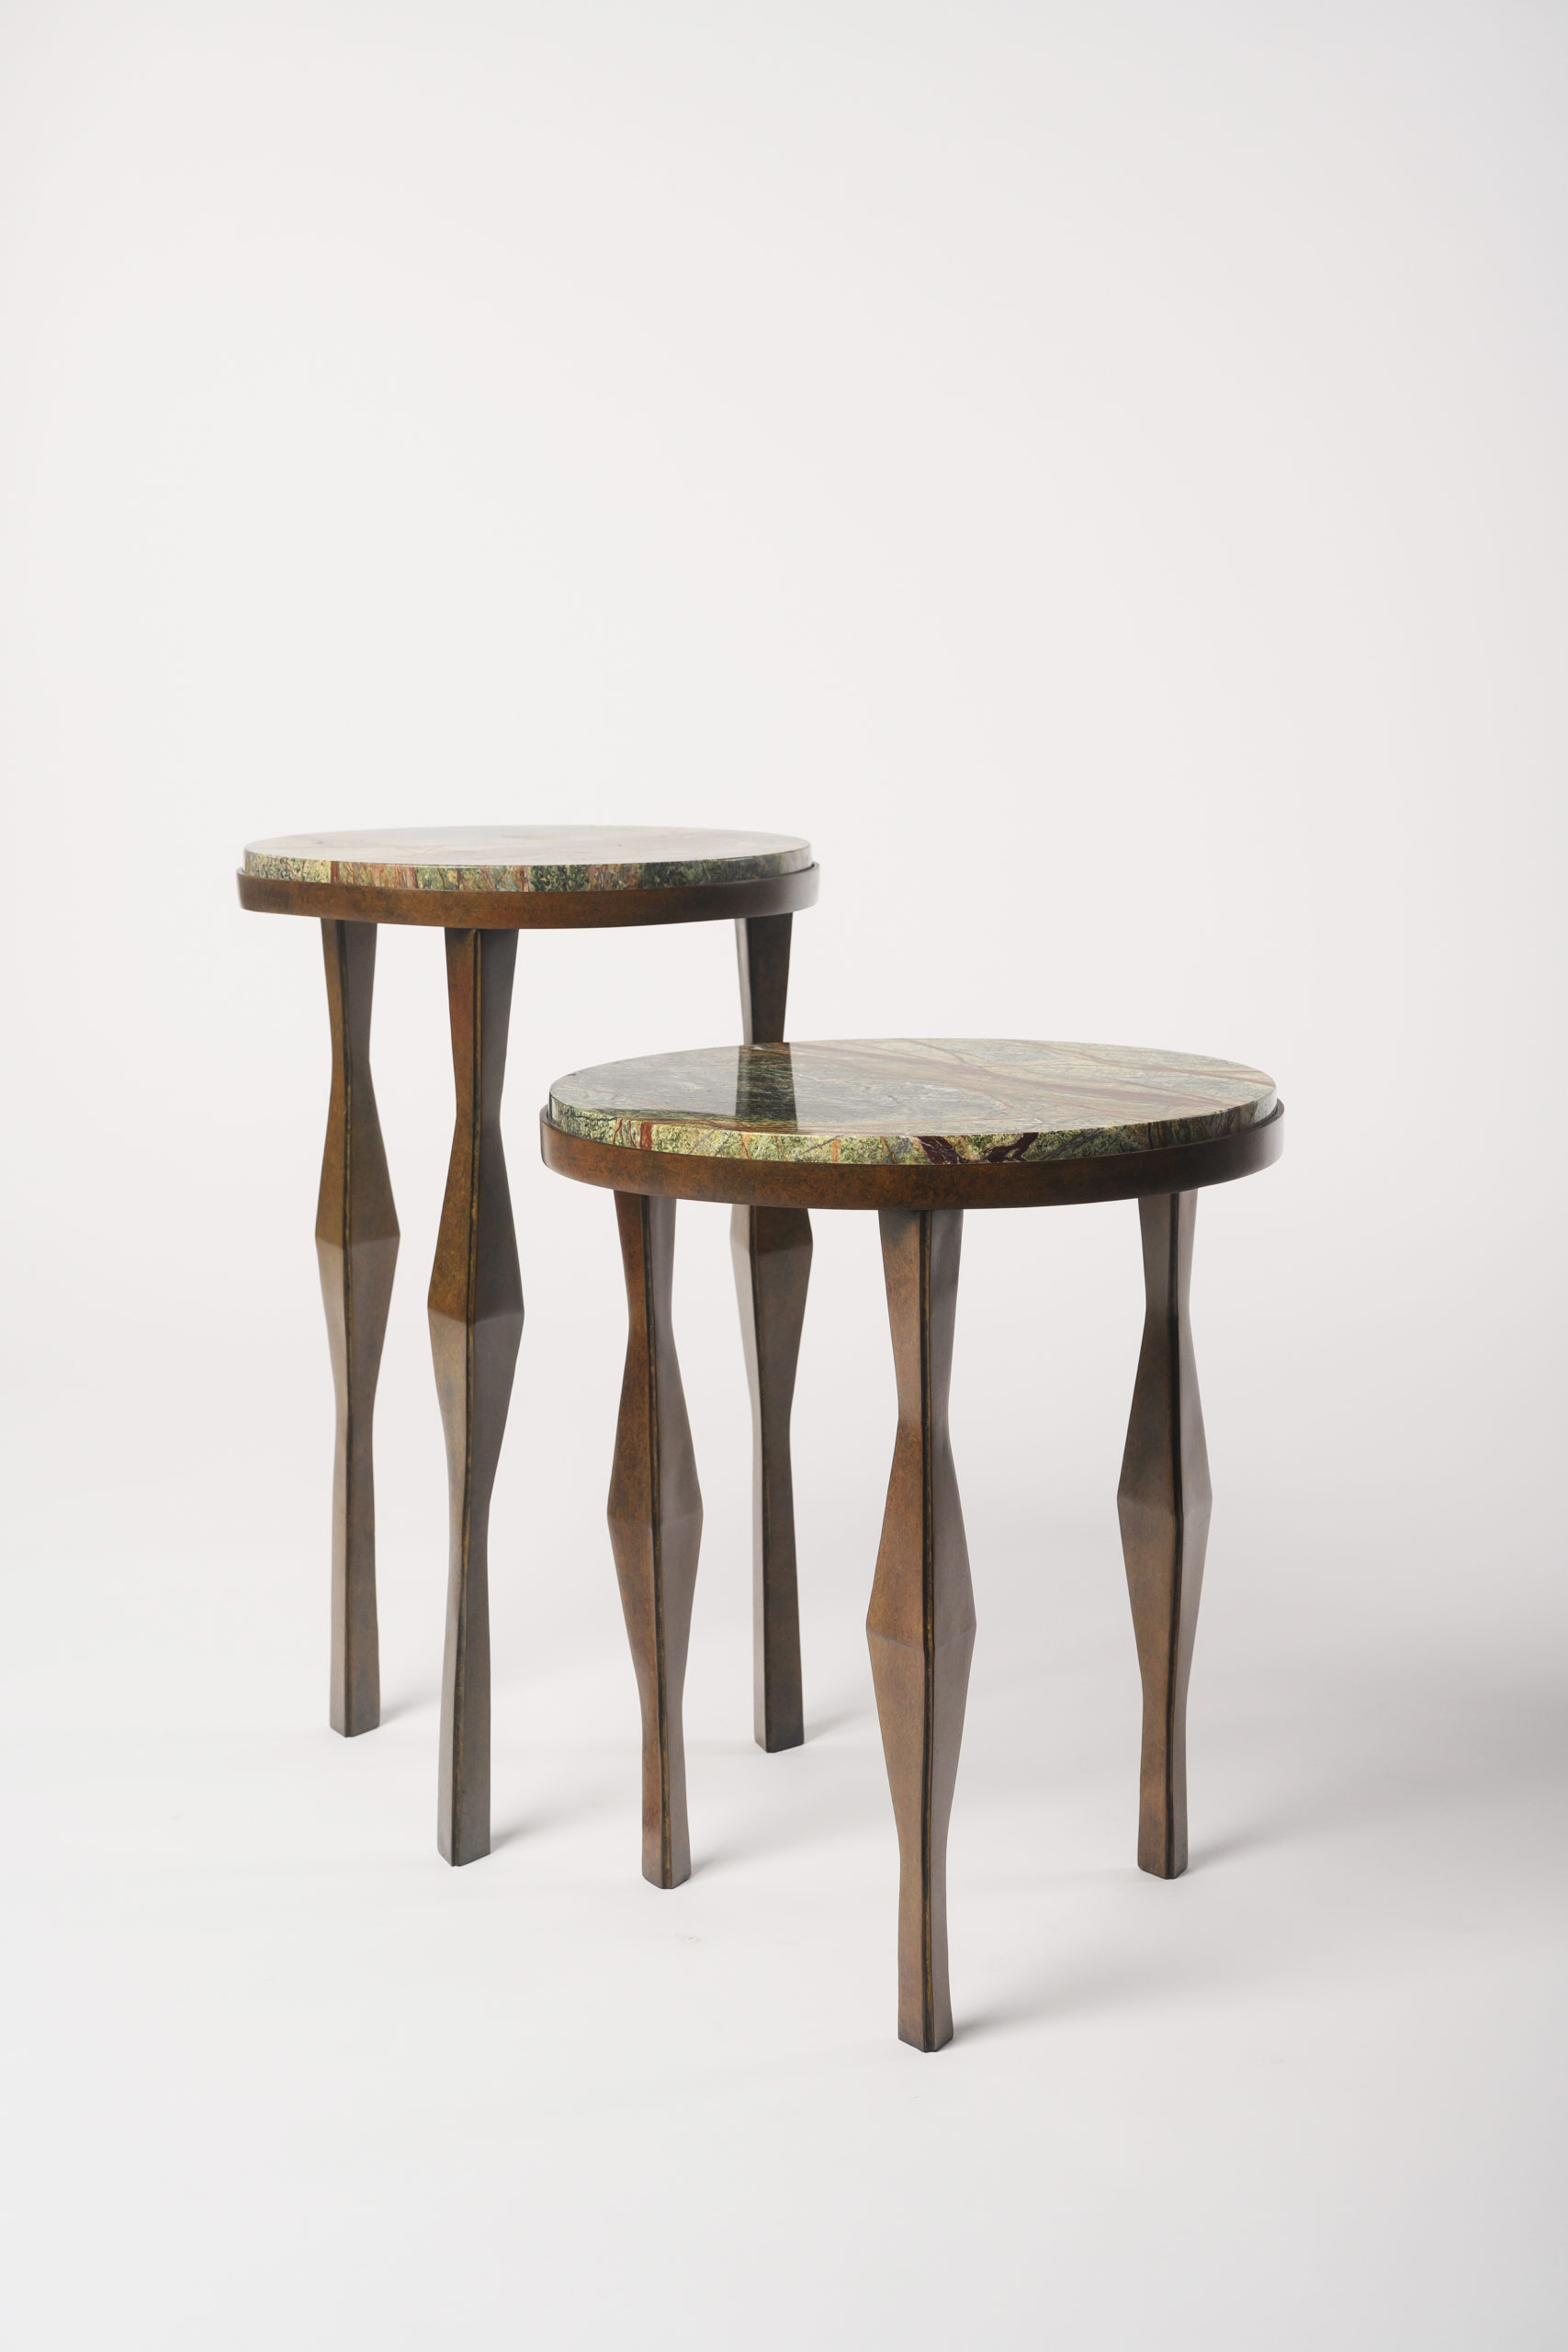 NYDC_WNWN_products_david_sutherland_Arthur_side_table_BEE_4956